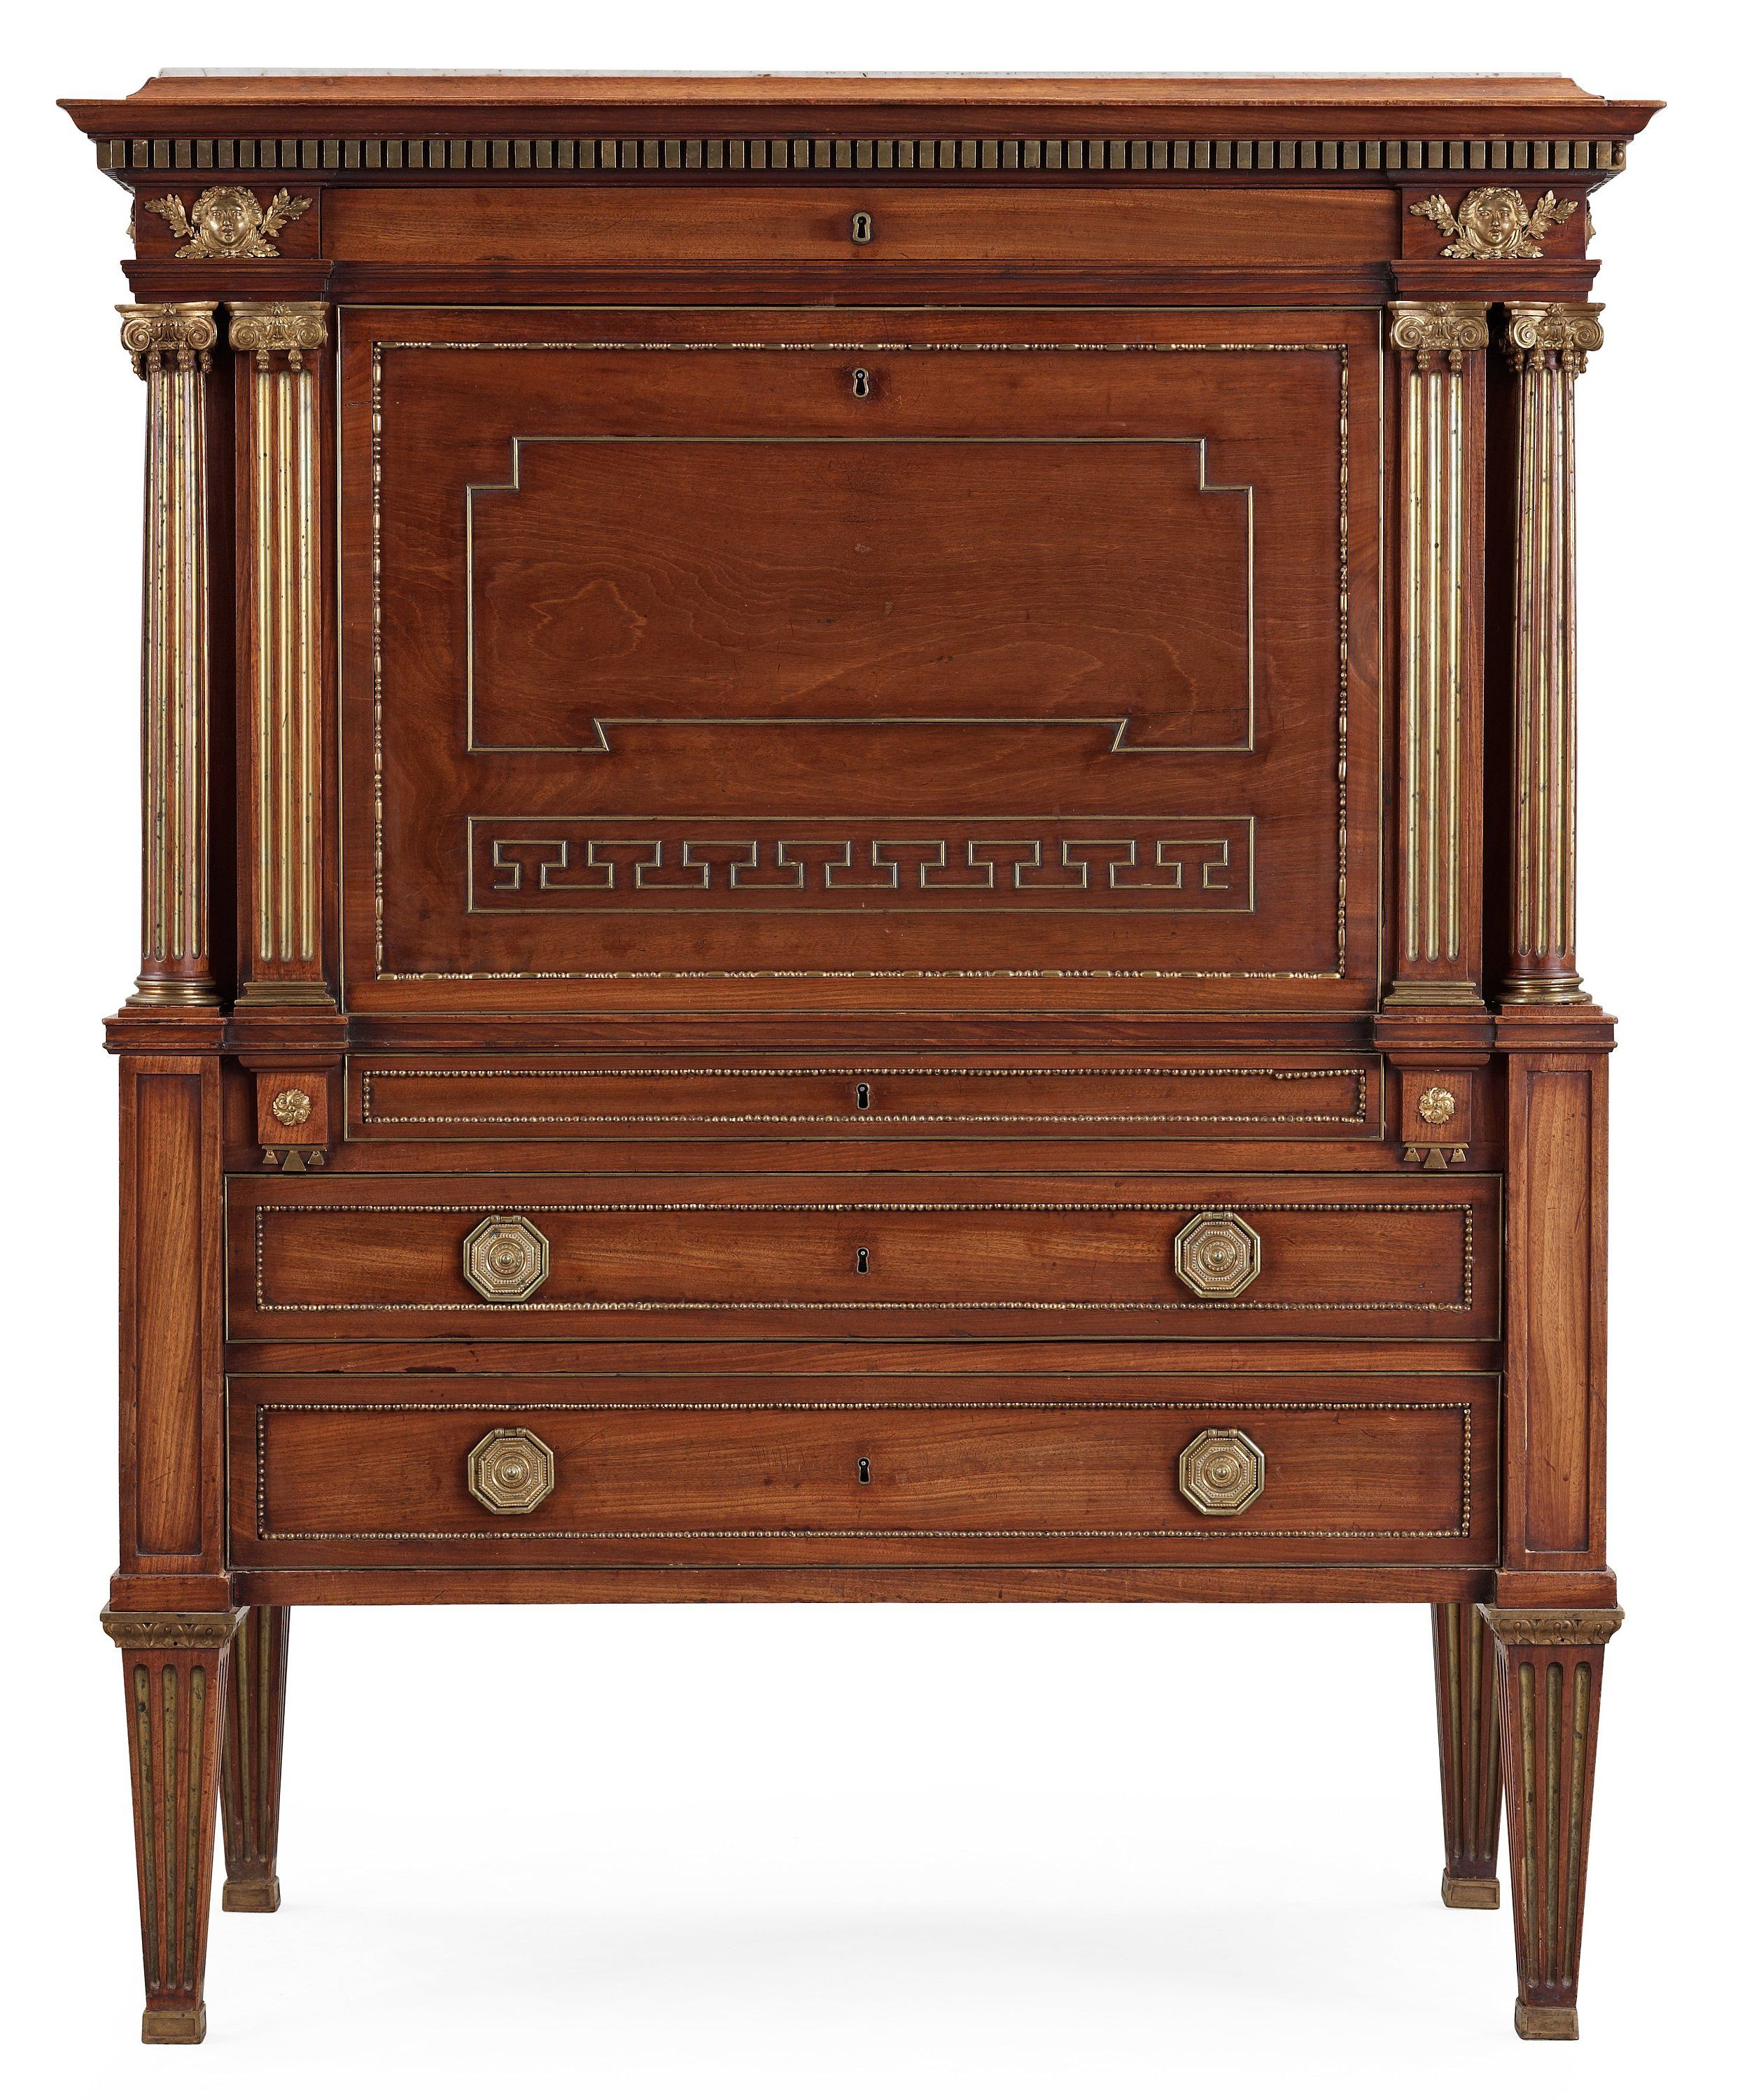 ** A late Gustavian masterpiece writing cabinet by J. F. Wejssenburg, Stockholm, 1795.